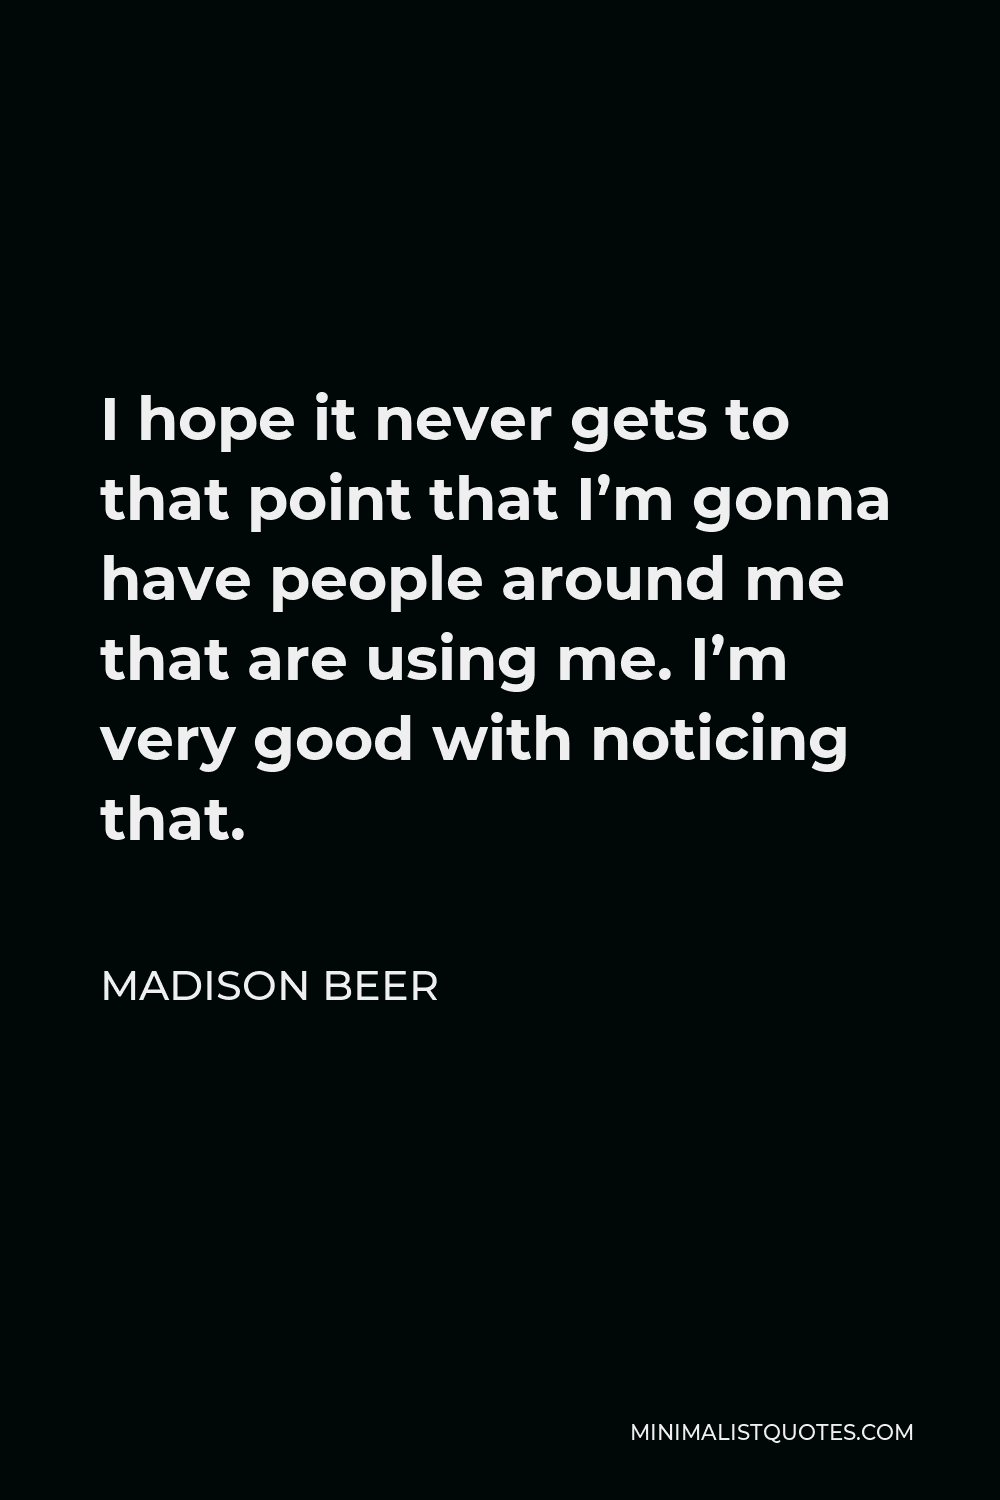 Madison Beer Quote - I hope it never gets to that point that I'm gonna have people around me that are using me. I'm very good with noticing that.